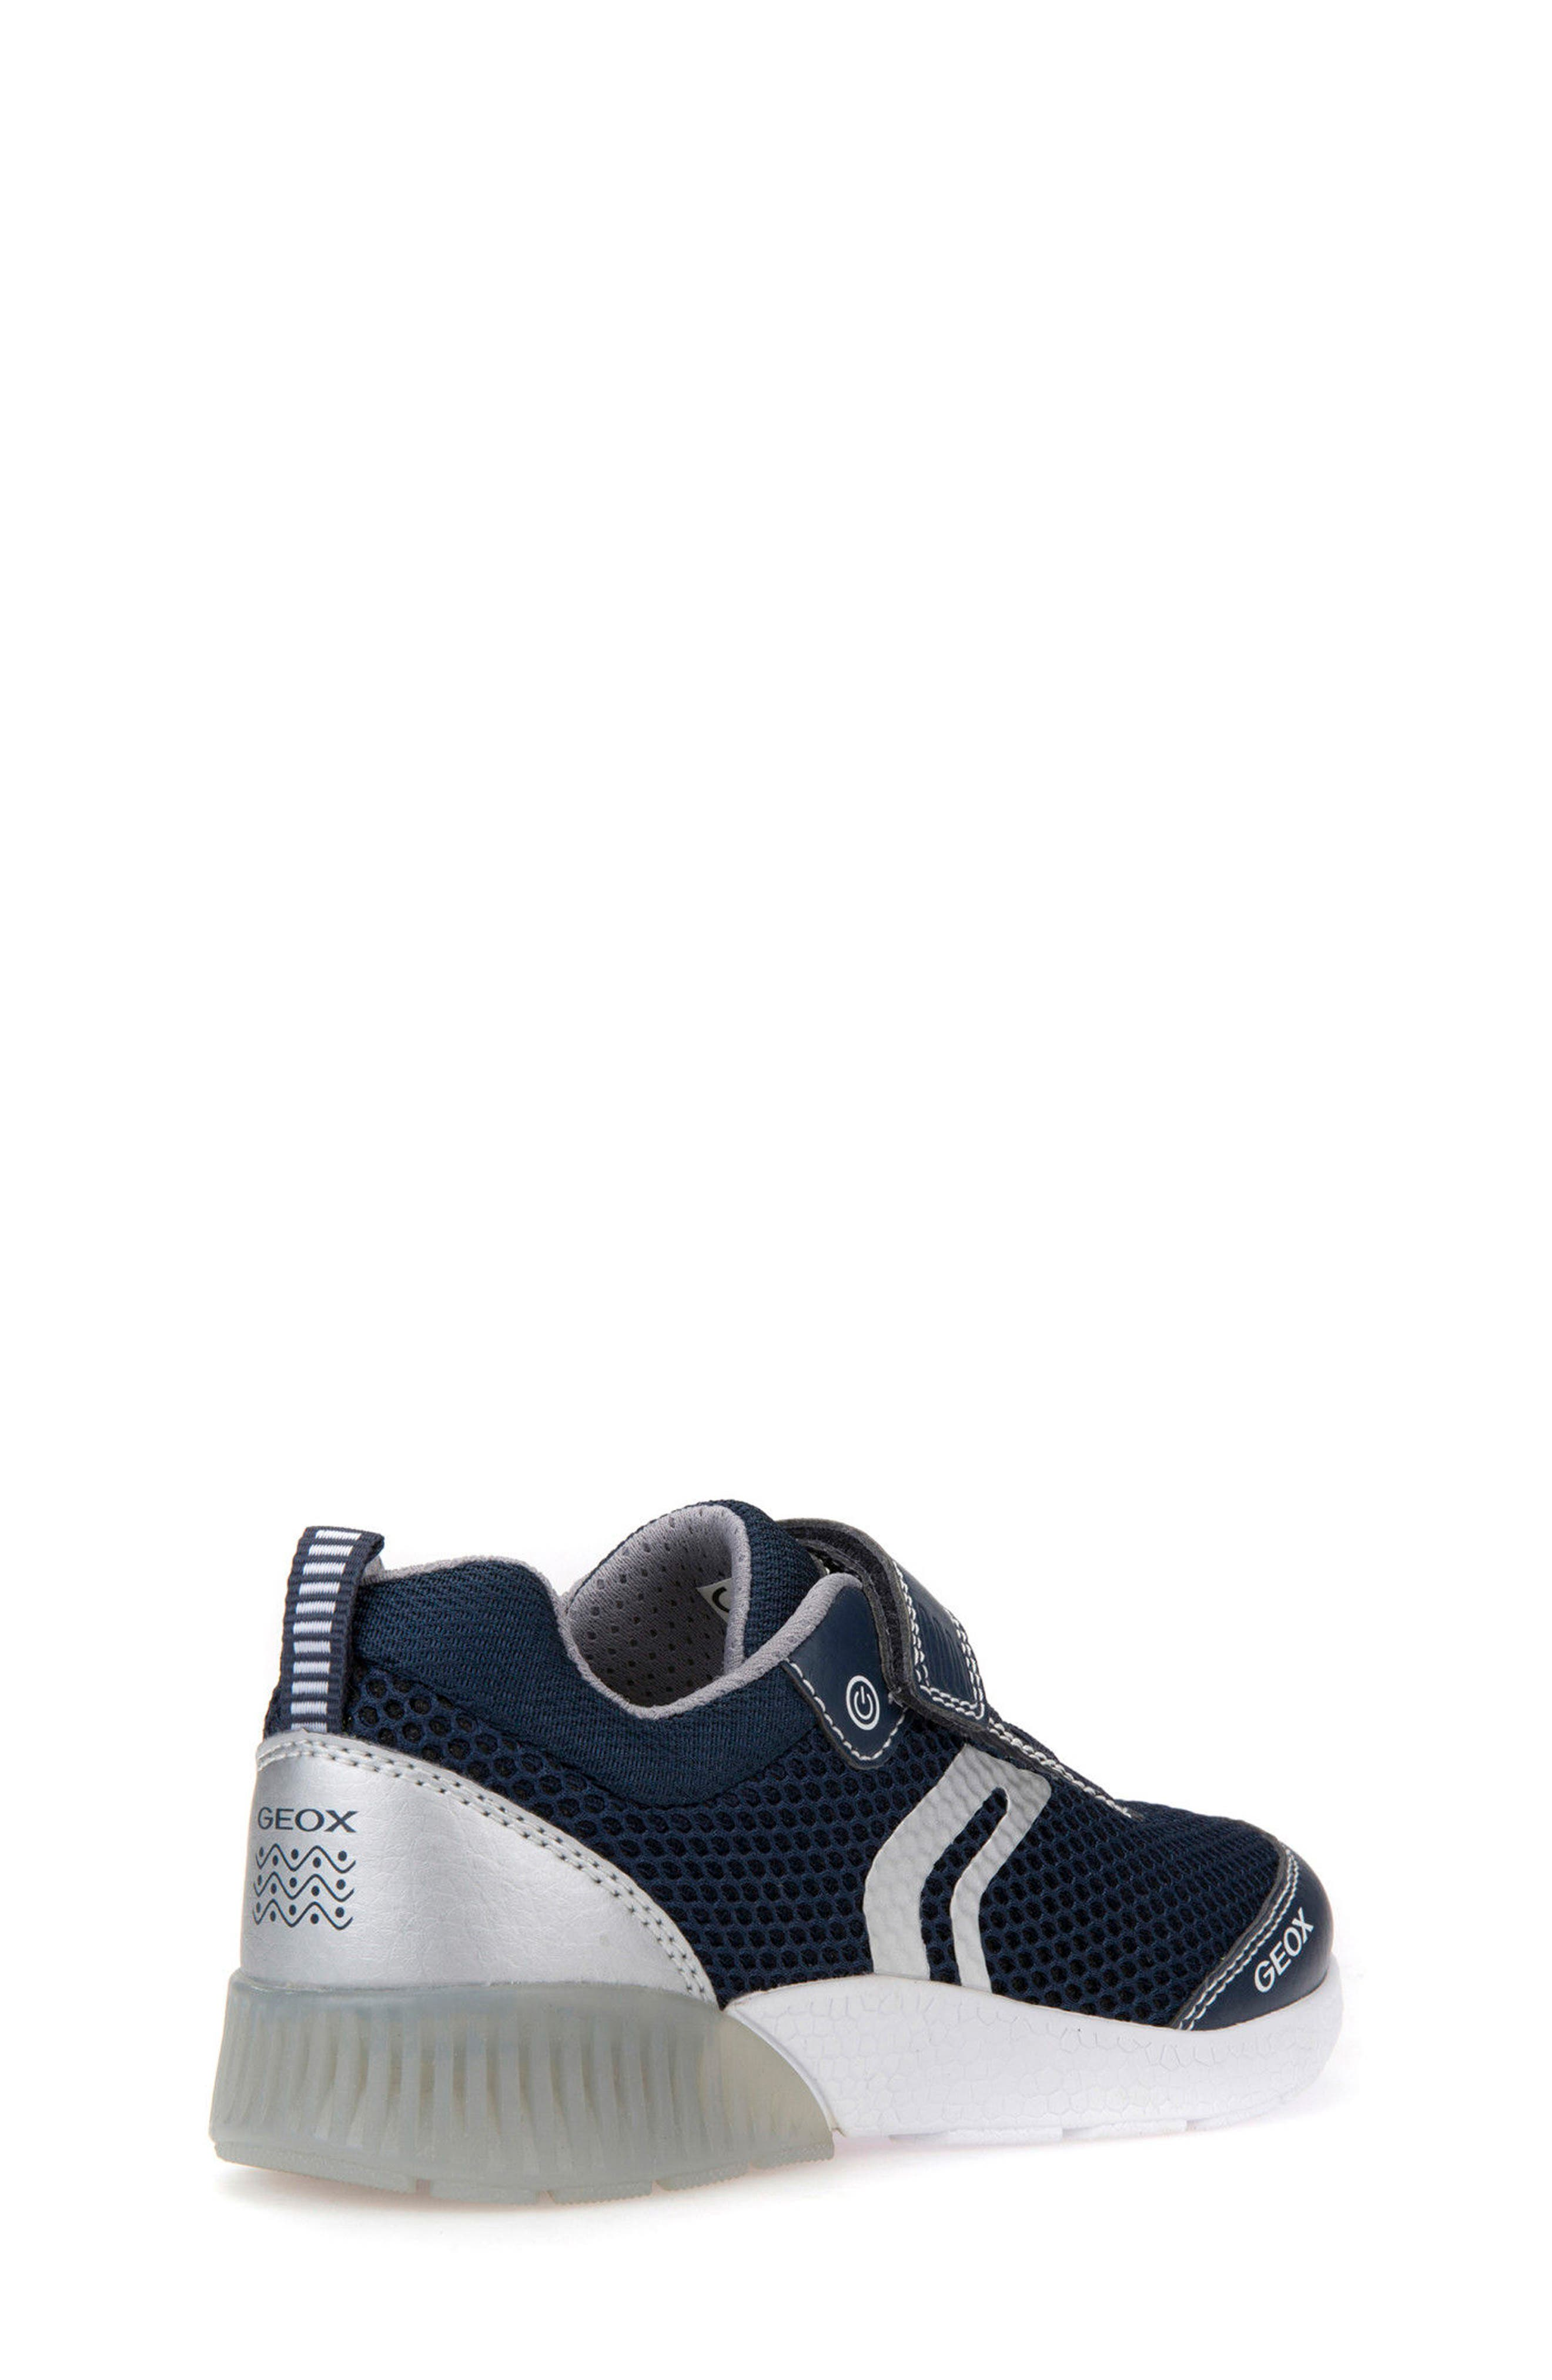 Sveth Light-Up Sneaker,                             Alternate thumbnail 2, color,                             Navy/ Silver